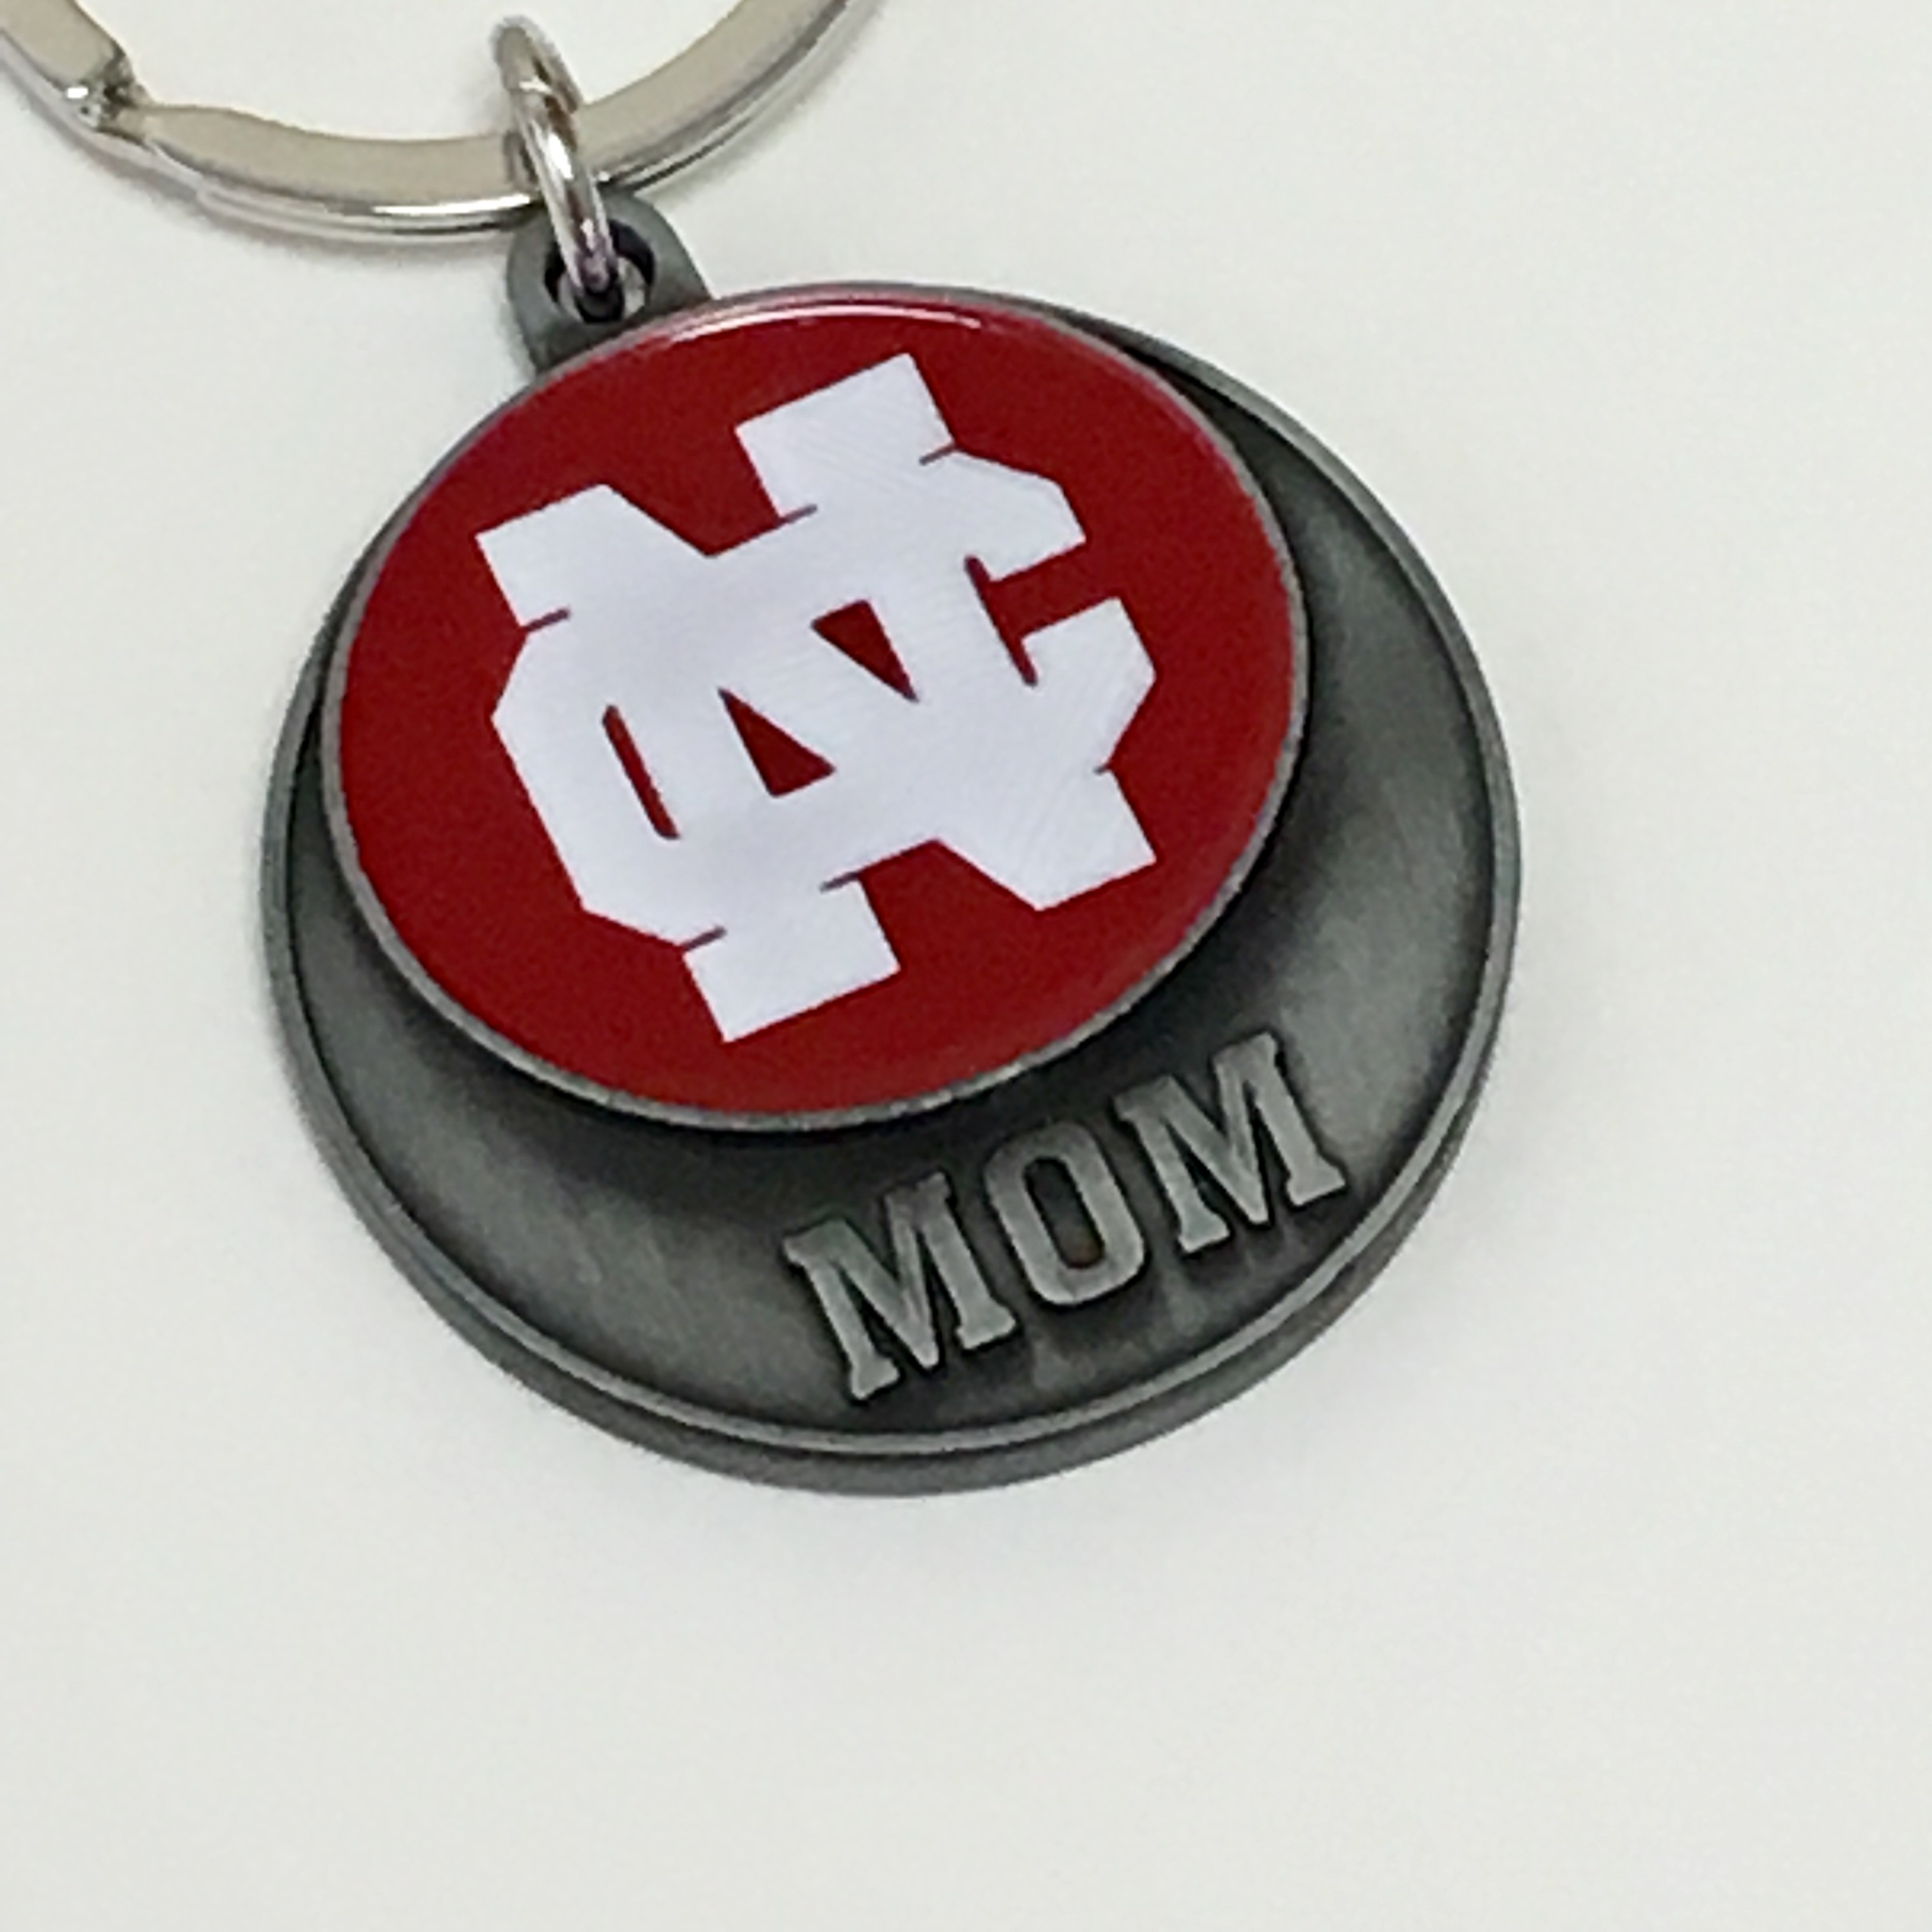 Image for the MOM (Keychain) product